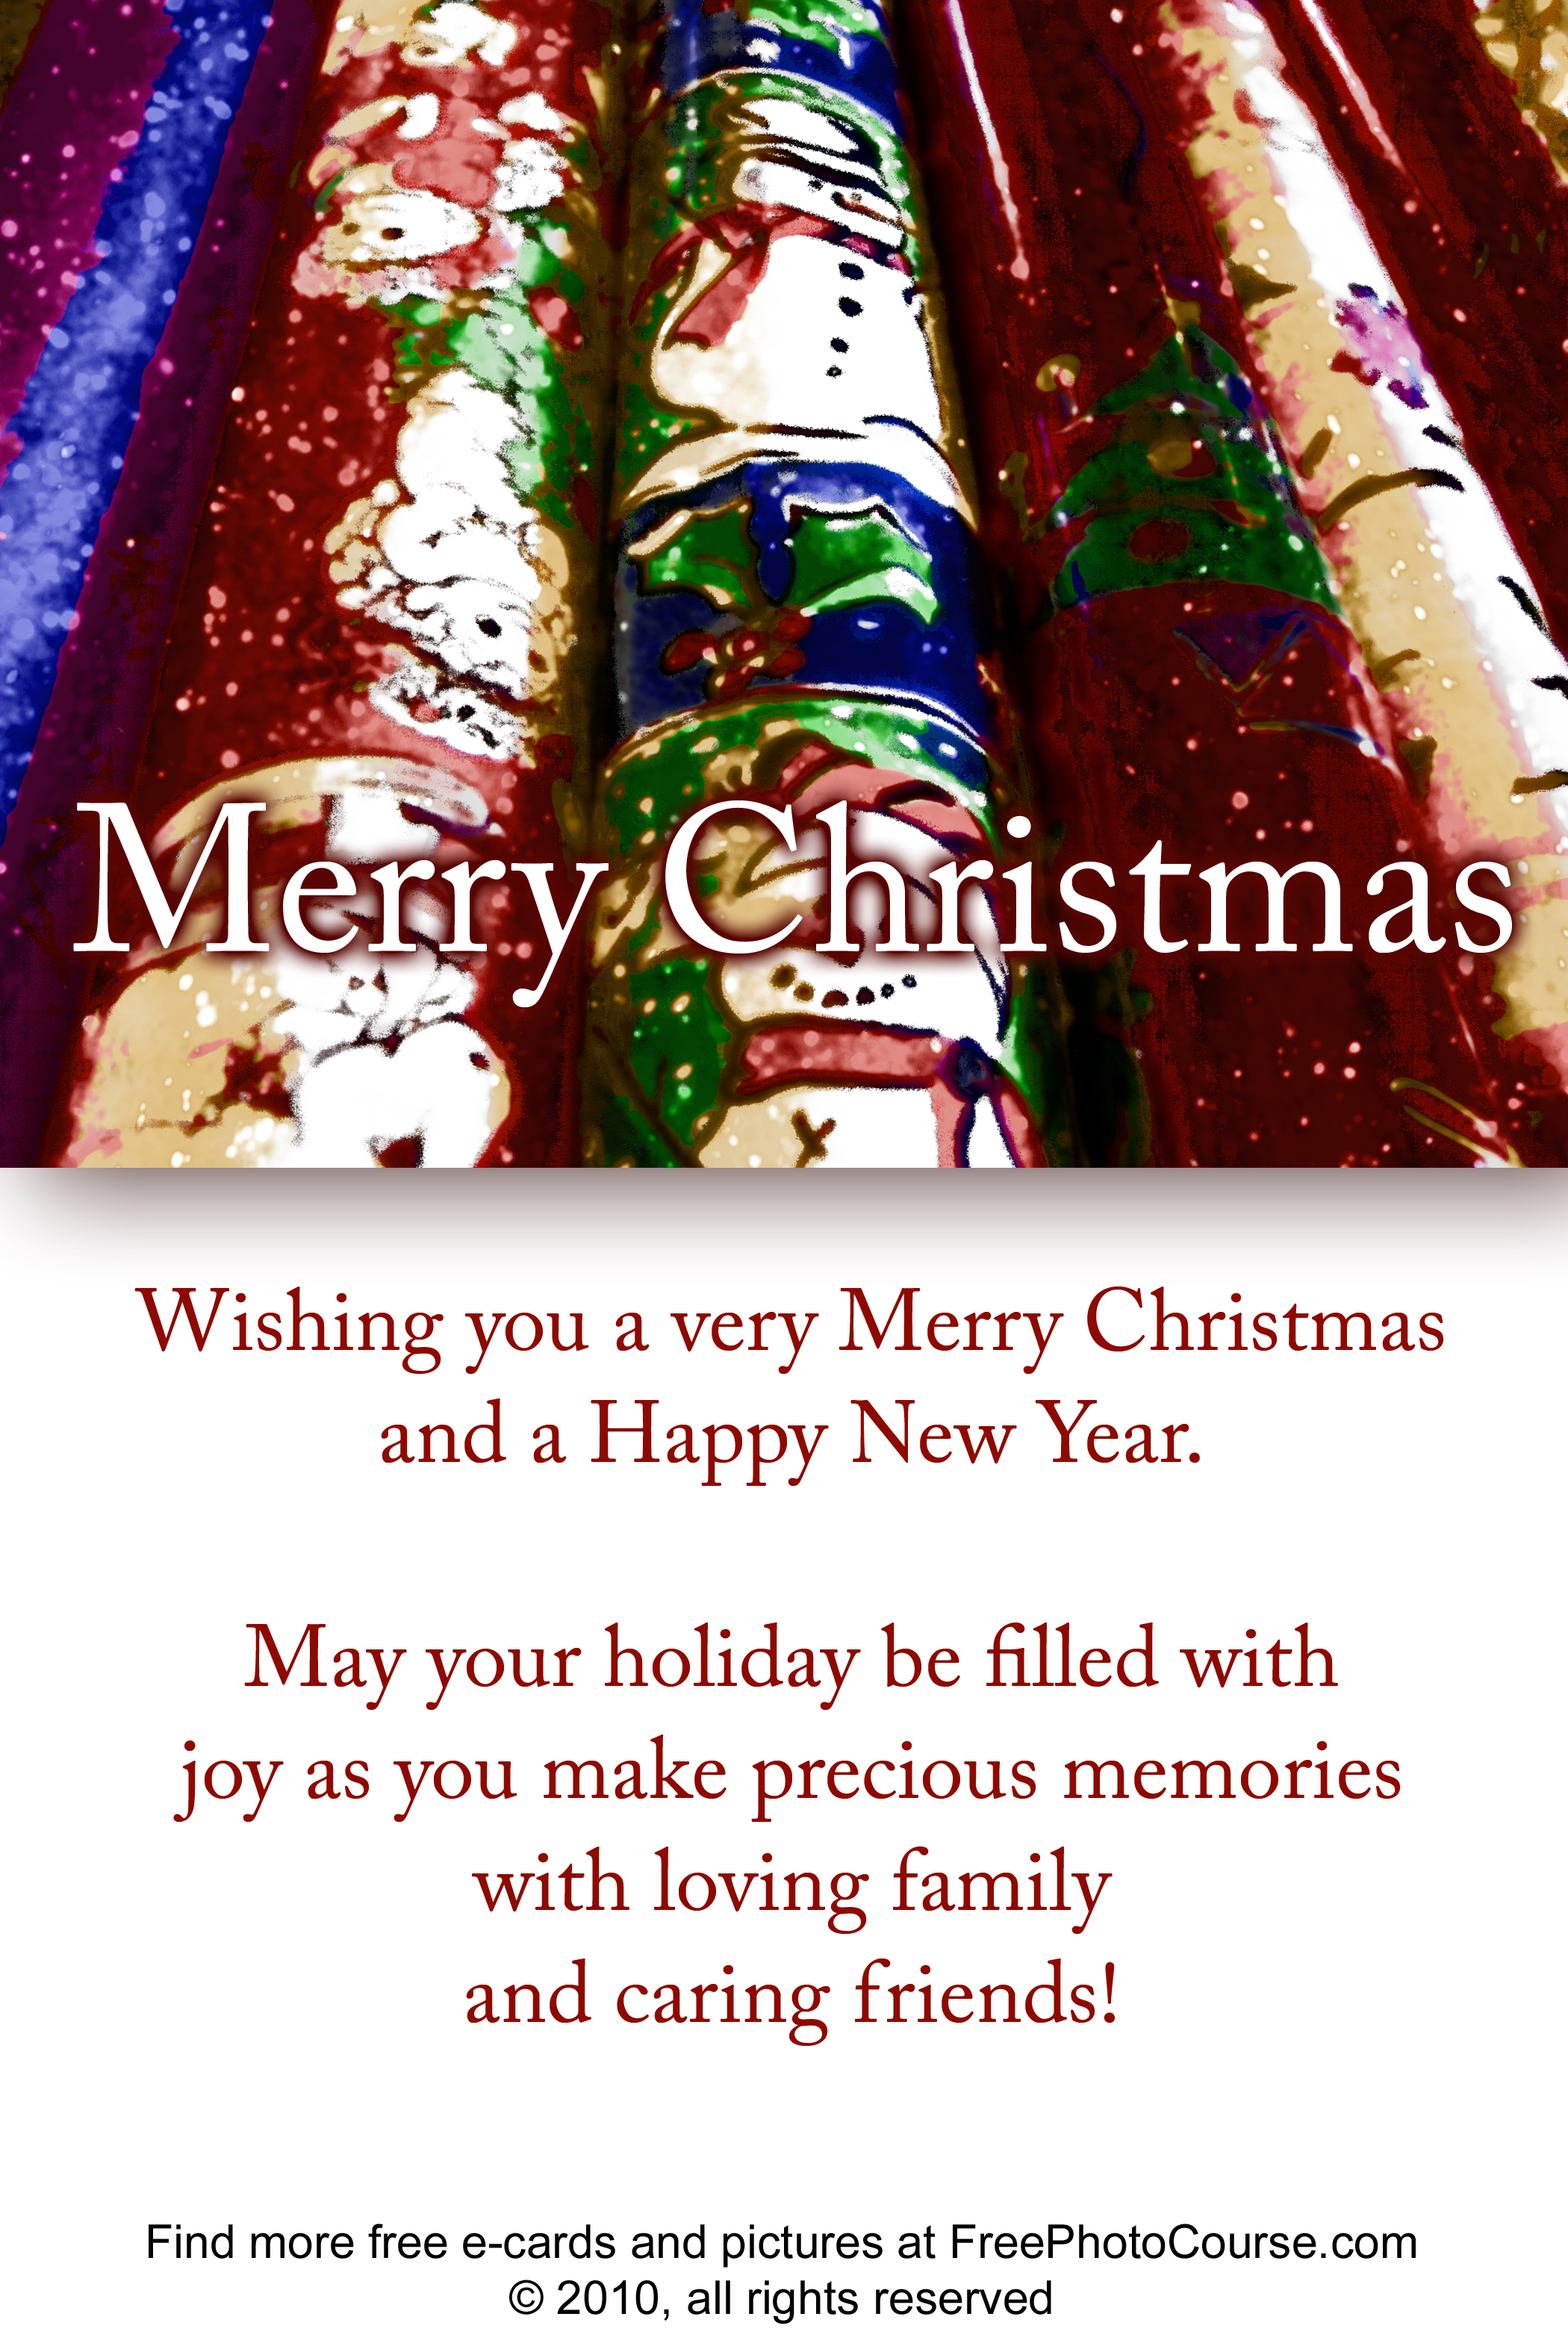 Free christmas and holiday cards and pictures download file m4hsunfo